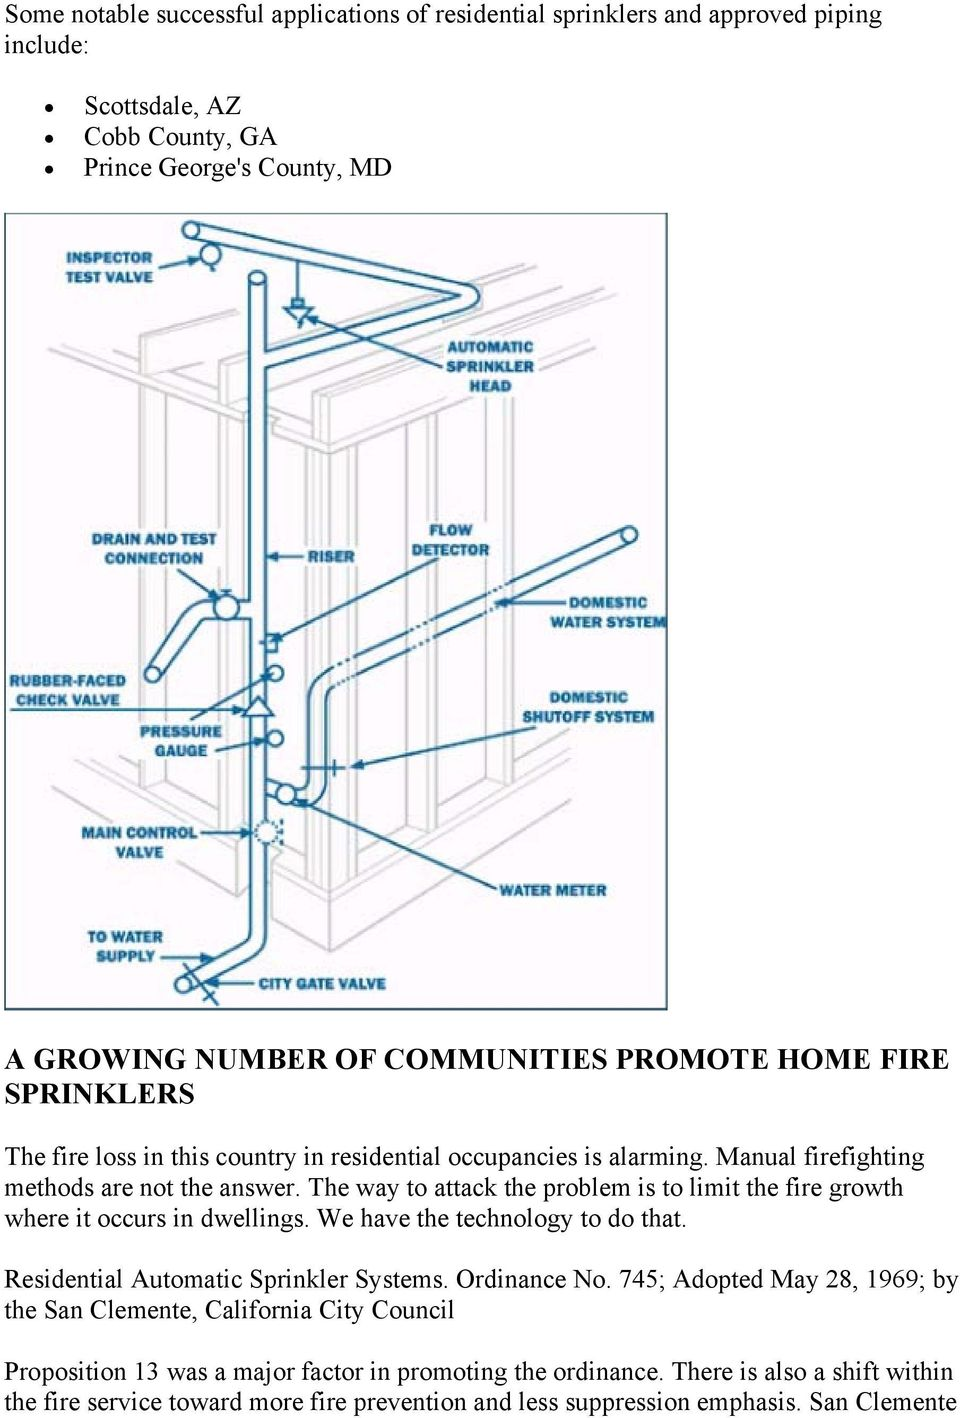 The way to attack the problem is to limit the fire growth where it occurs in dwellings. We have the technology to do that. Residential Automatic Sprinkler Systems. Ordinance No.